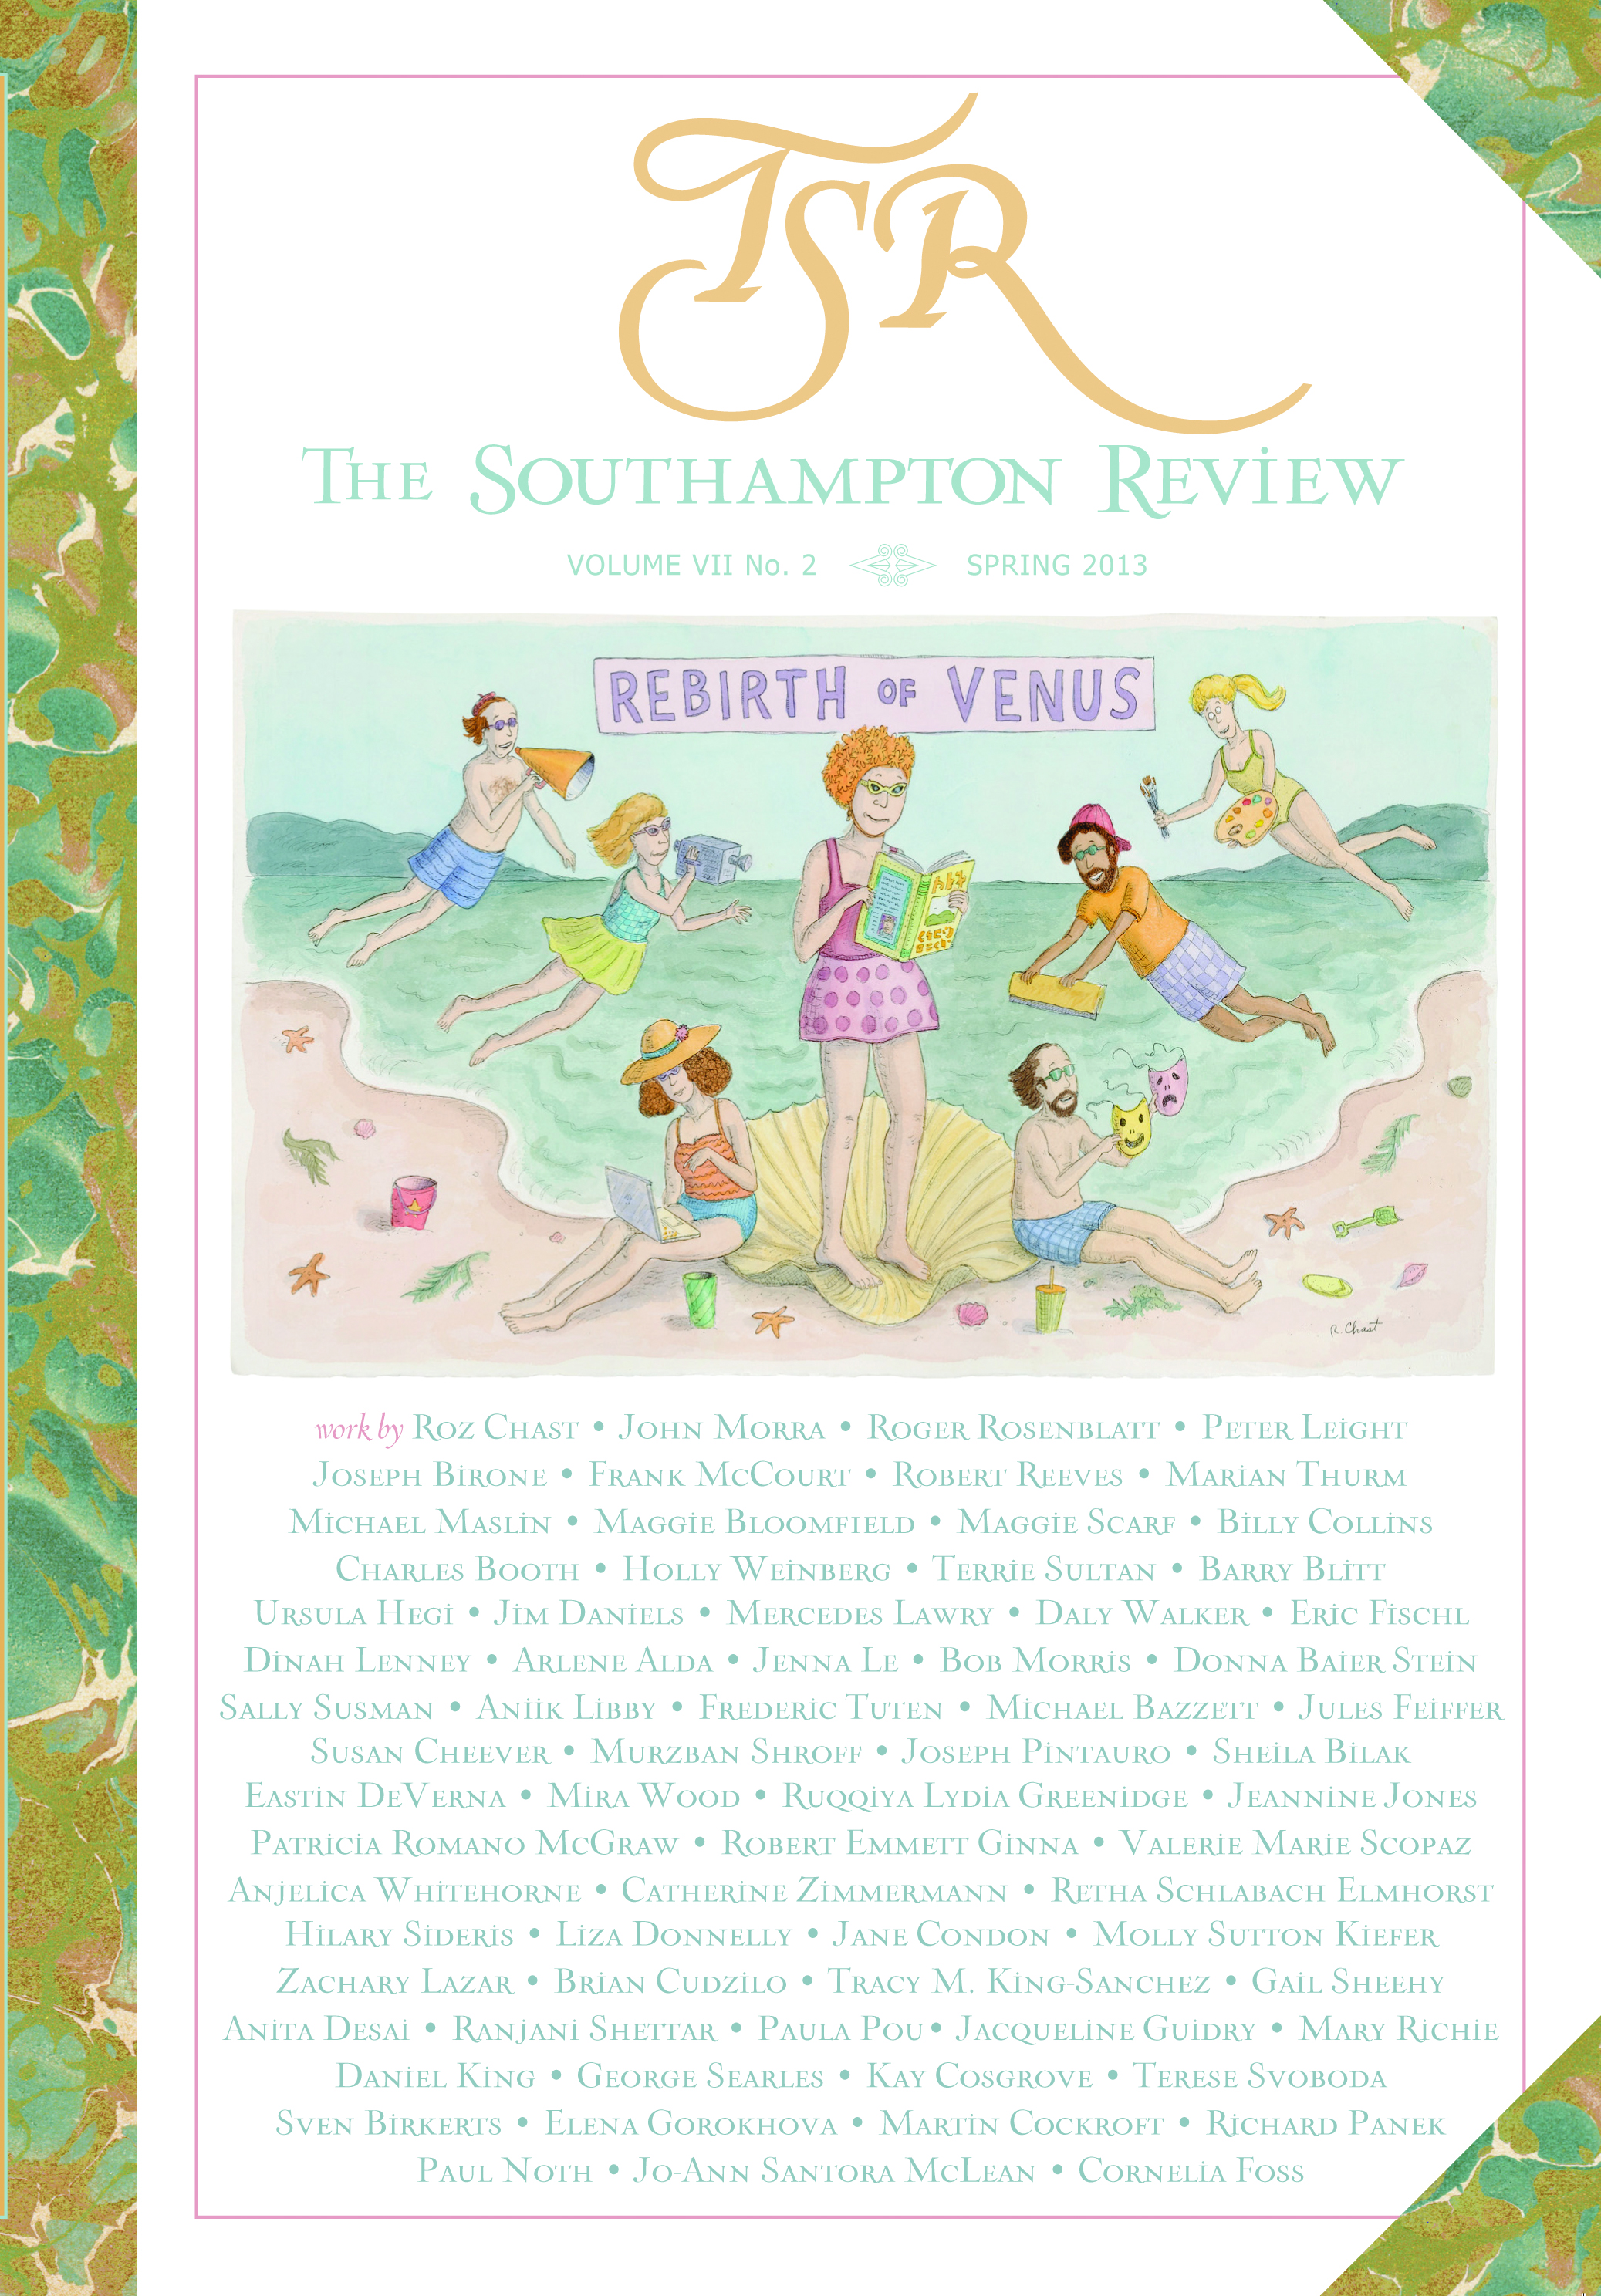 jewish review of books summer 2013